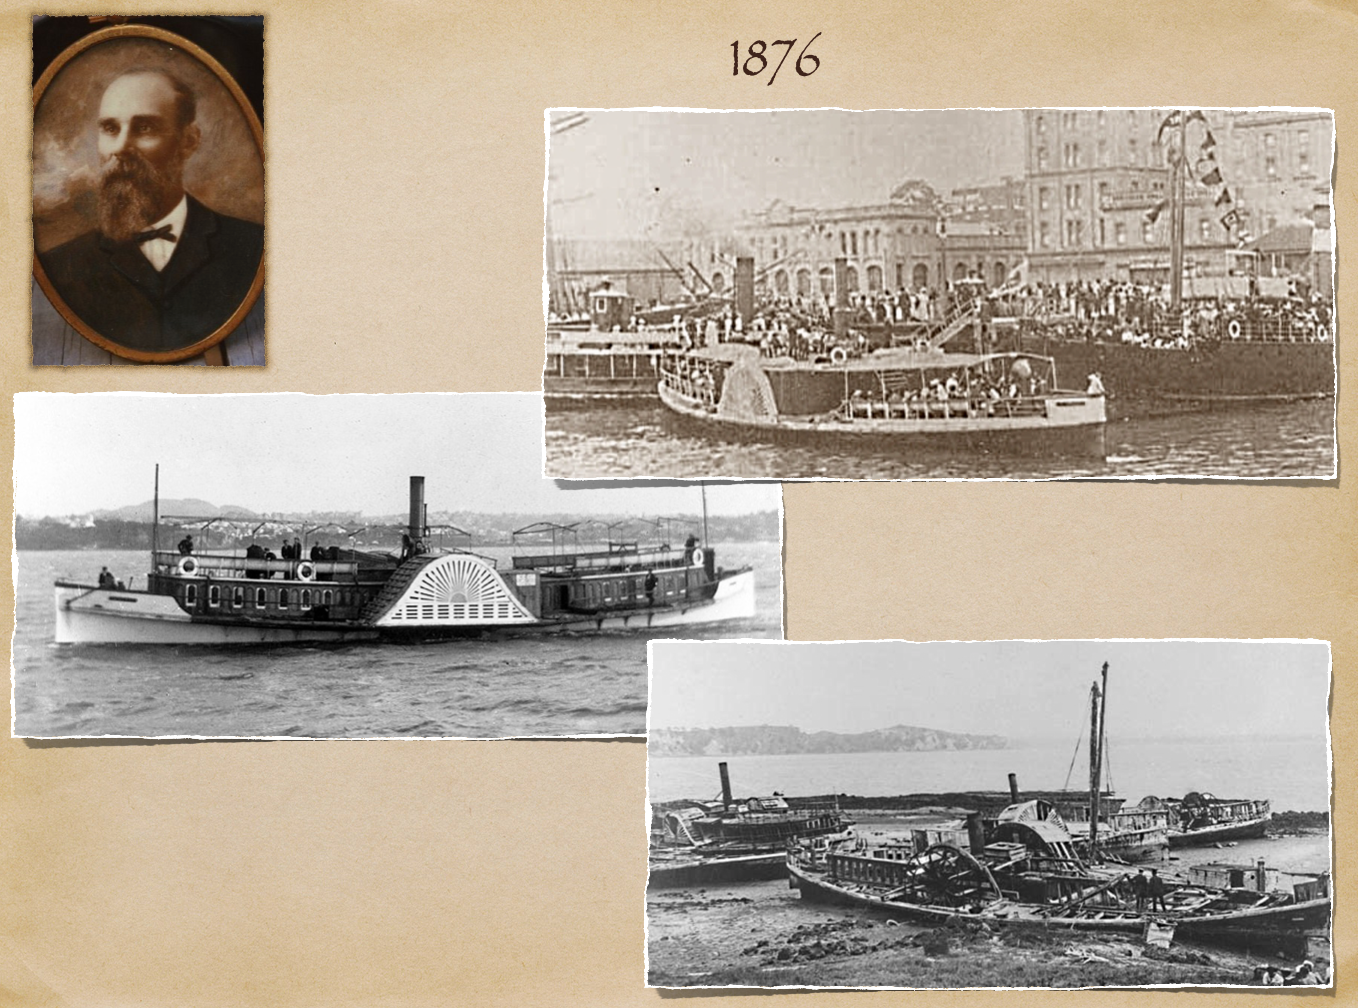 These images represent the style of the paddle steamers of the time and are of such vessels in Auckland. The bottom right image shows these vessels which when ending their commercial lives were apparently dragged onto the beaches of Brown's Island and left to rot. Once of these ferries is the Tainui.